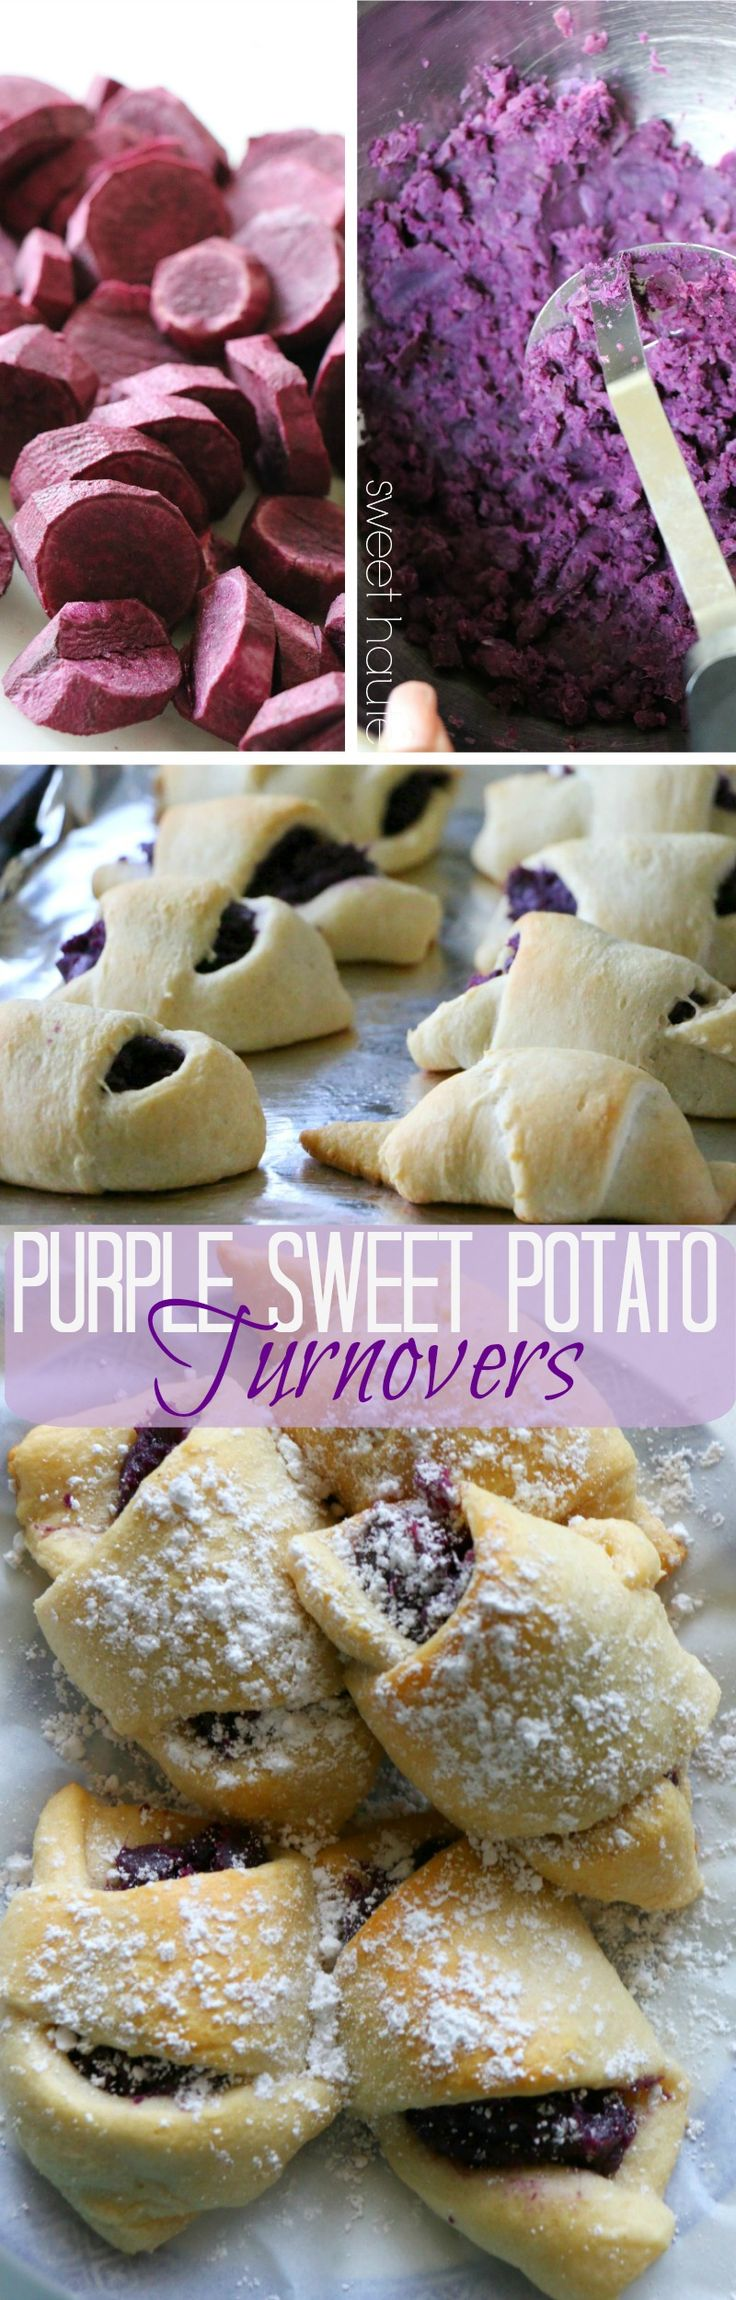 Purple sweet potatoes are rich in nutrients and antioxidants. Make some turnovers with this beautiful superfood today!